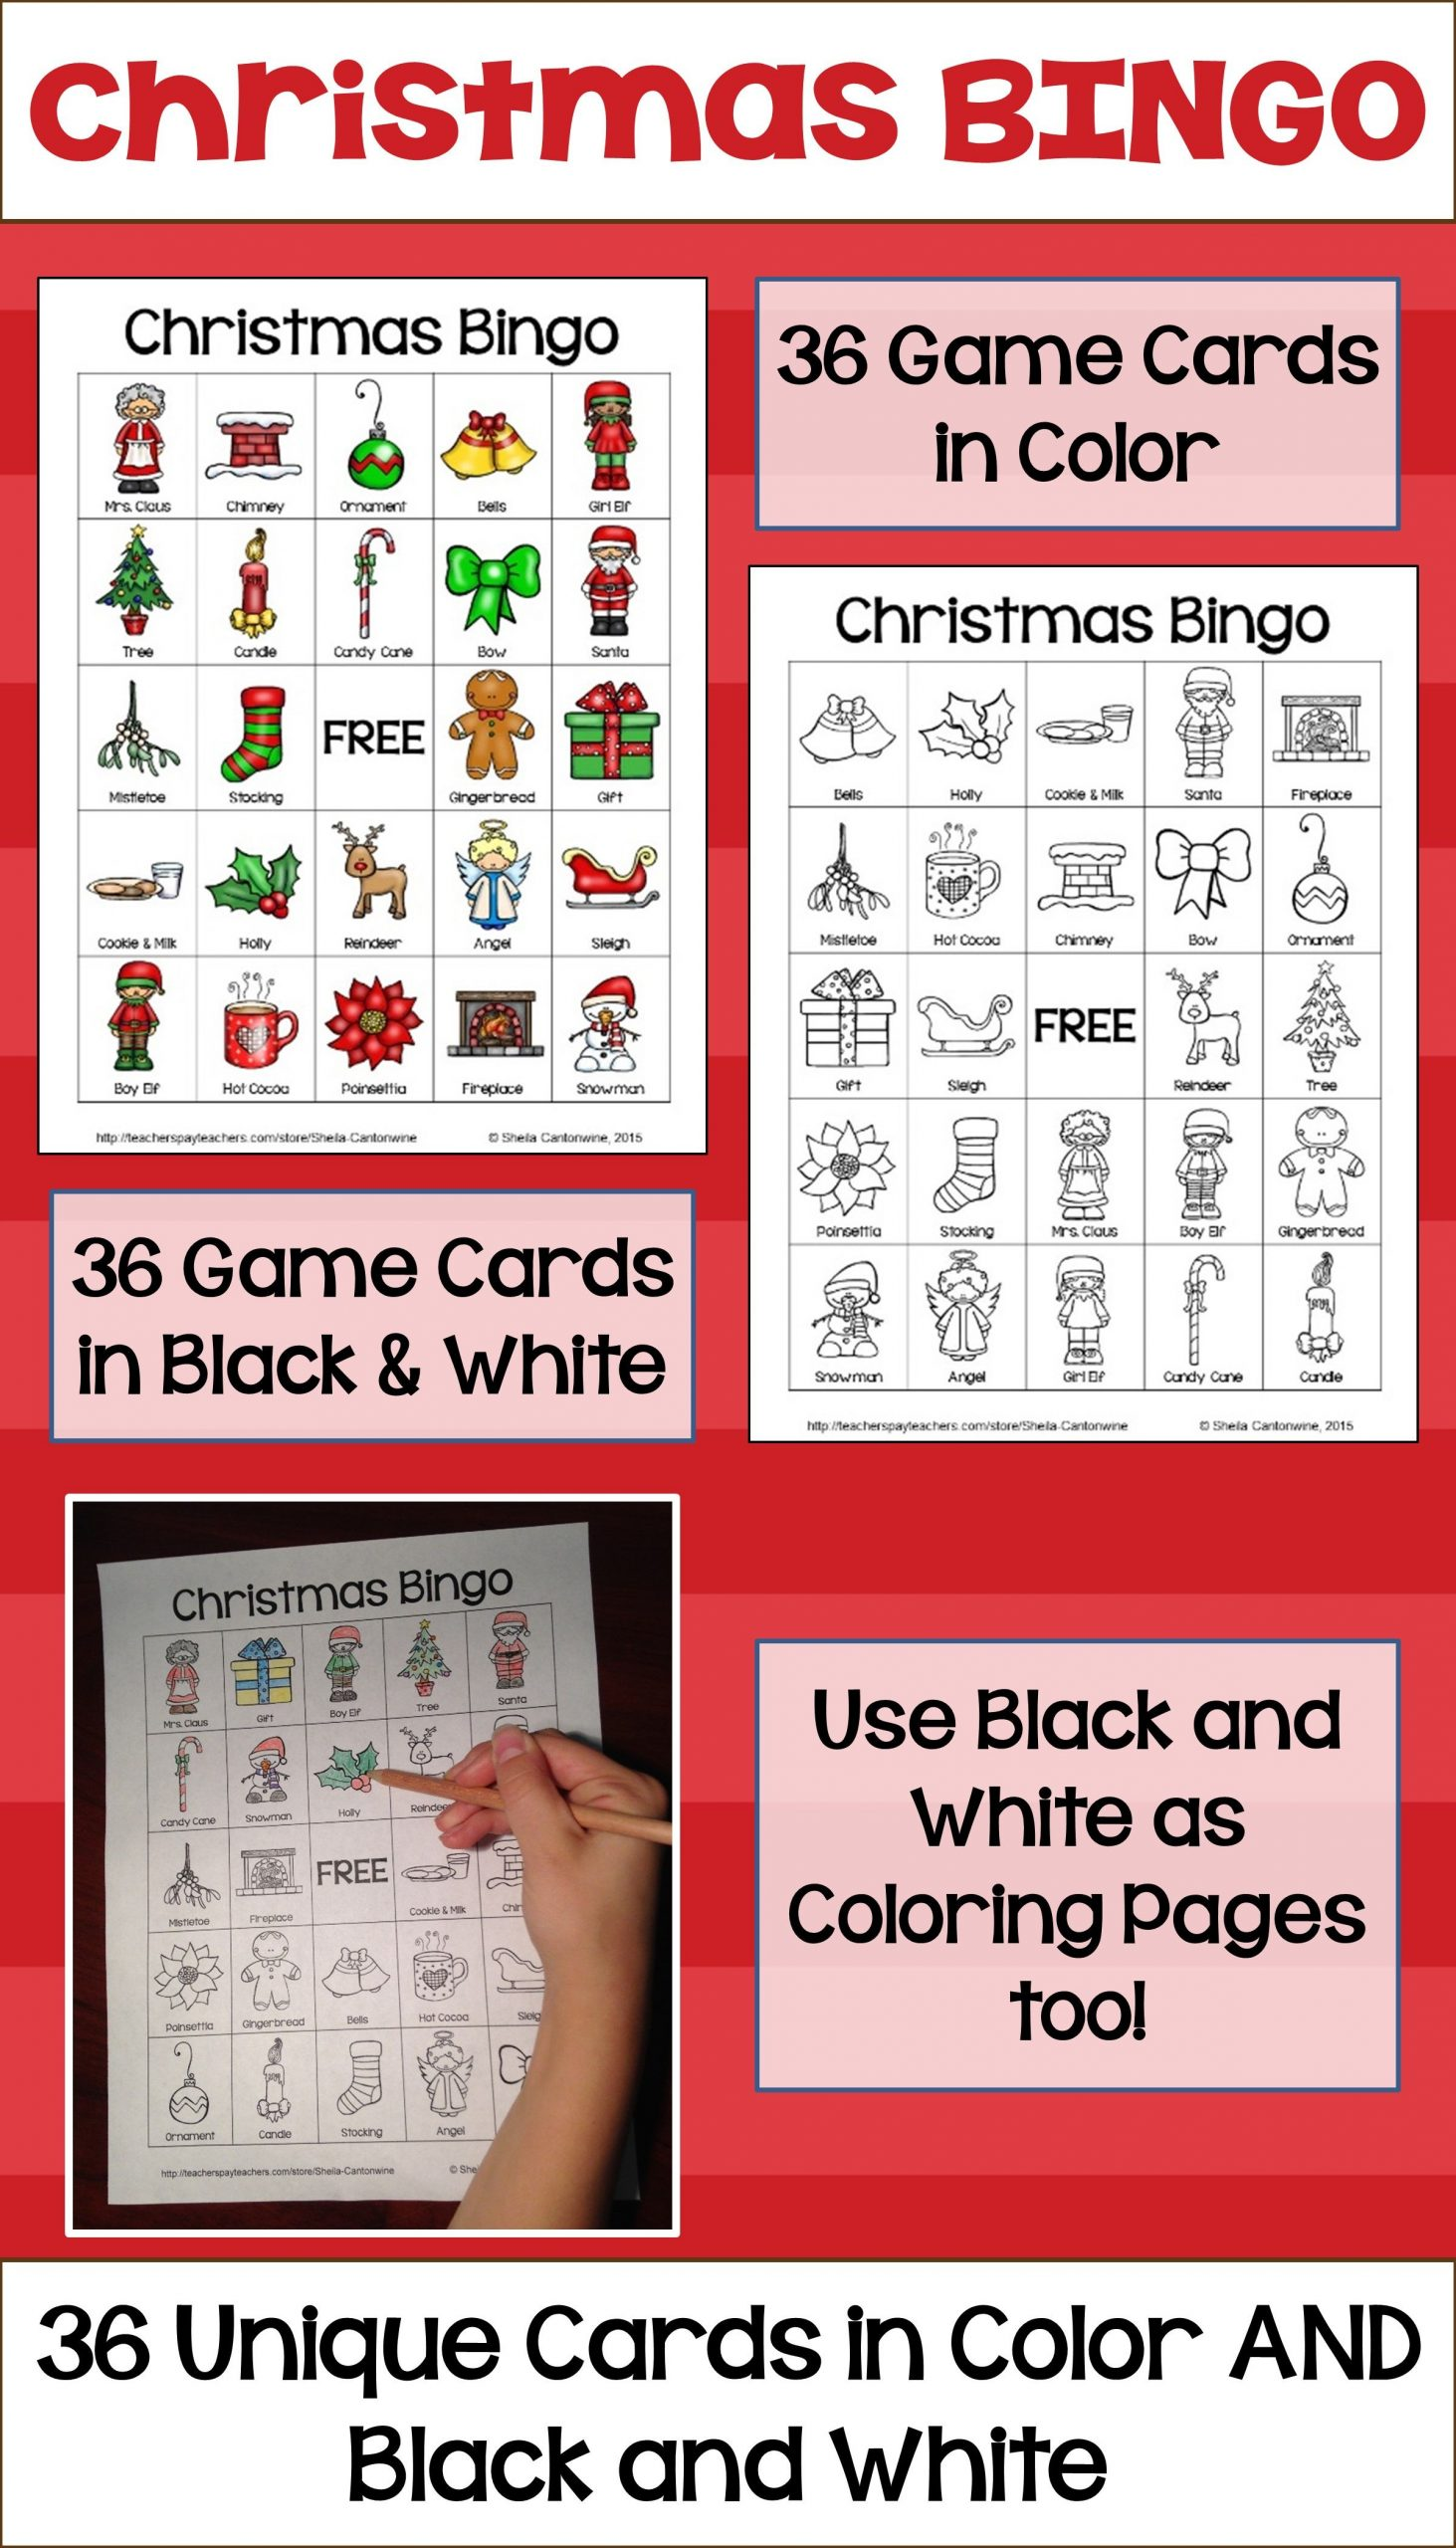 Christmas Bingo With 36 Unique Cards In Color And Black And